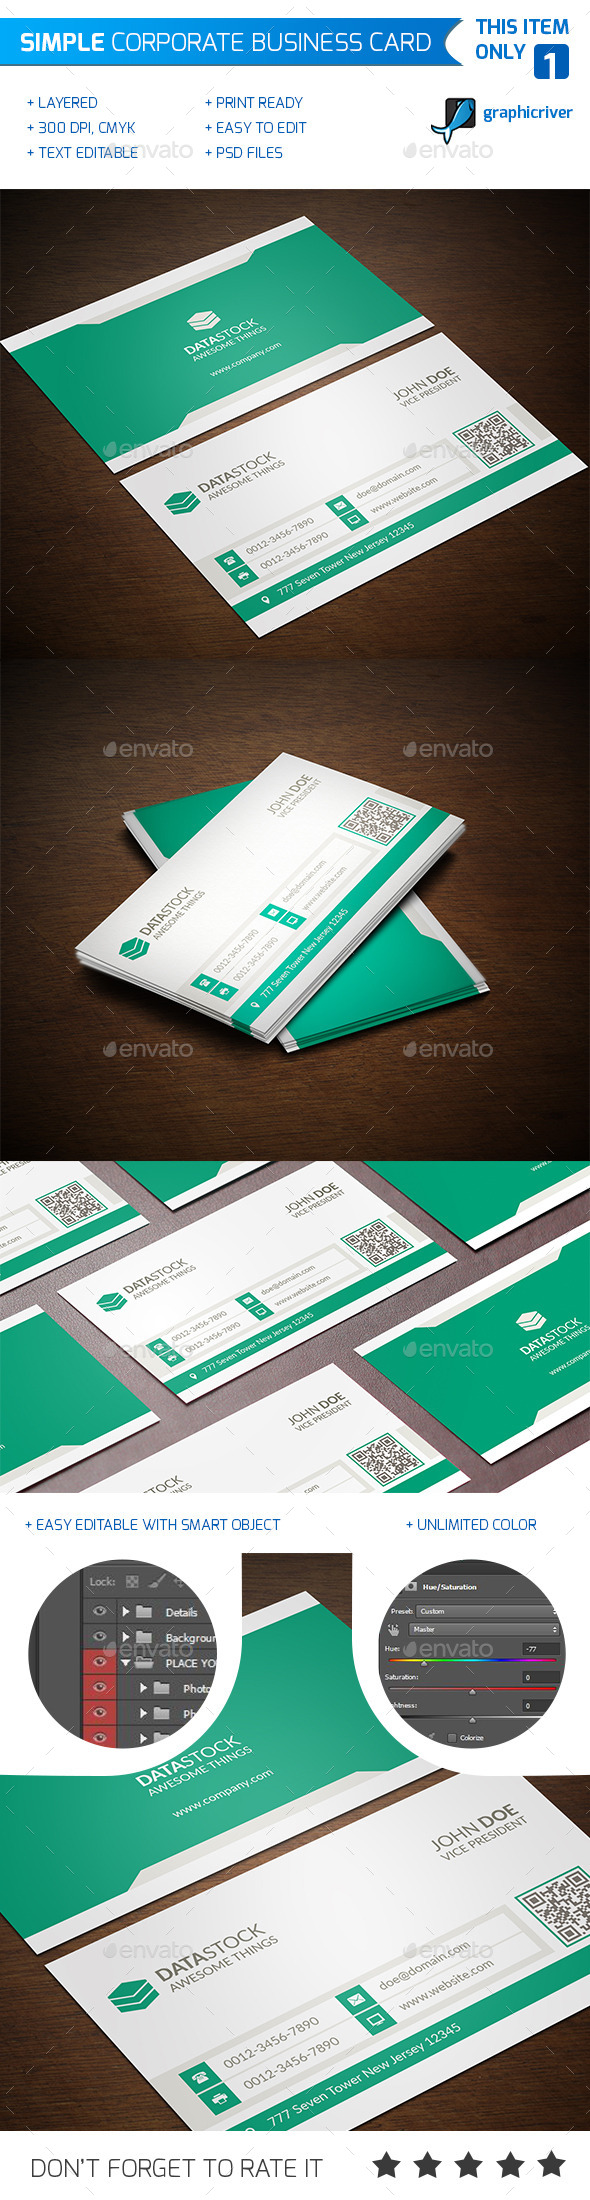 Simple Corporate Business Card - Corporate Business Cards